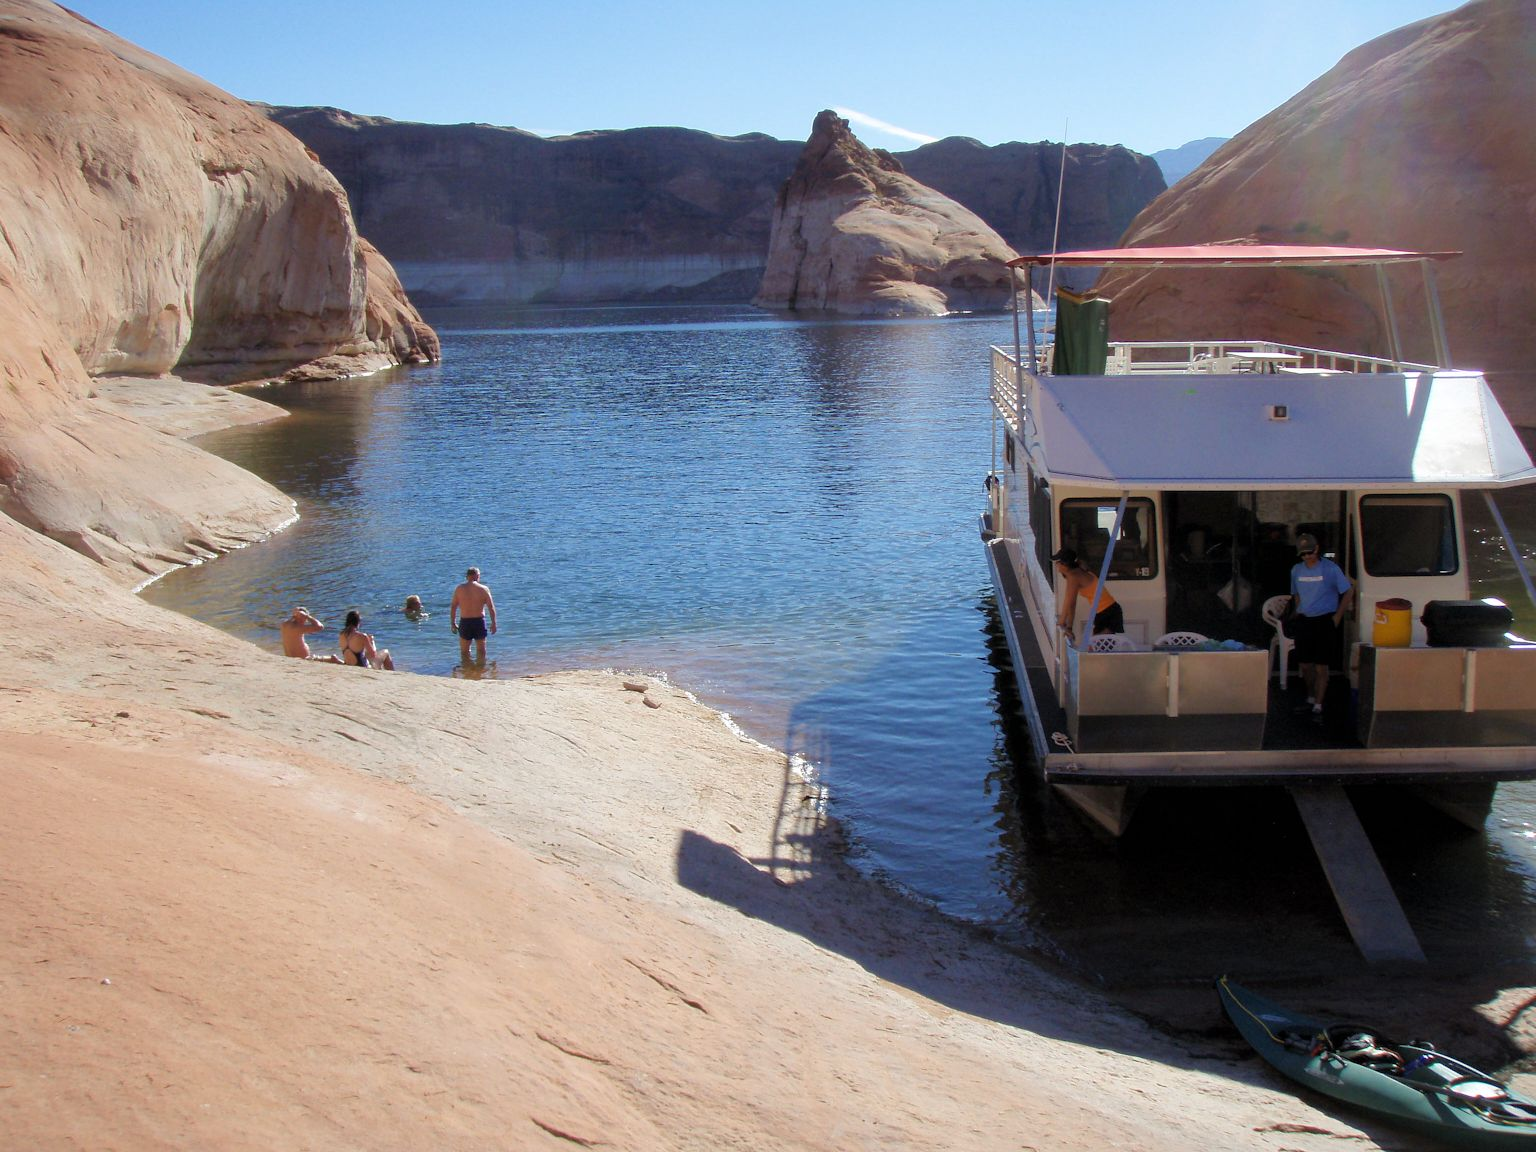 Glen Canyon National Recreation Area (Lake Powell)